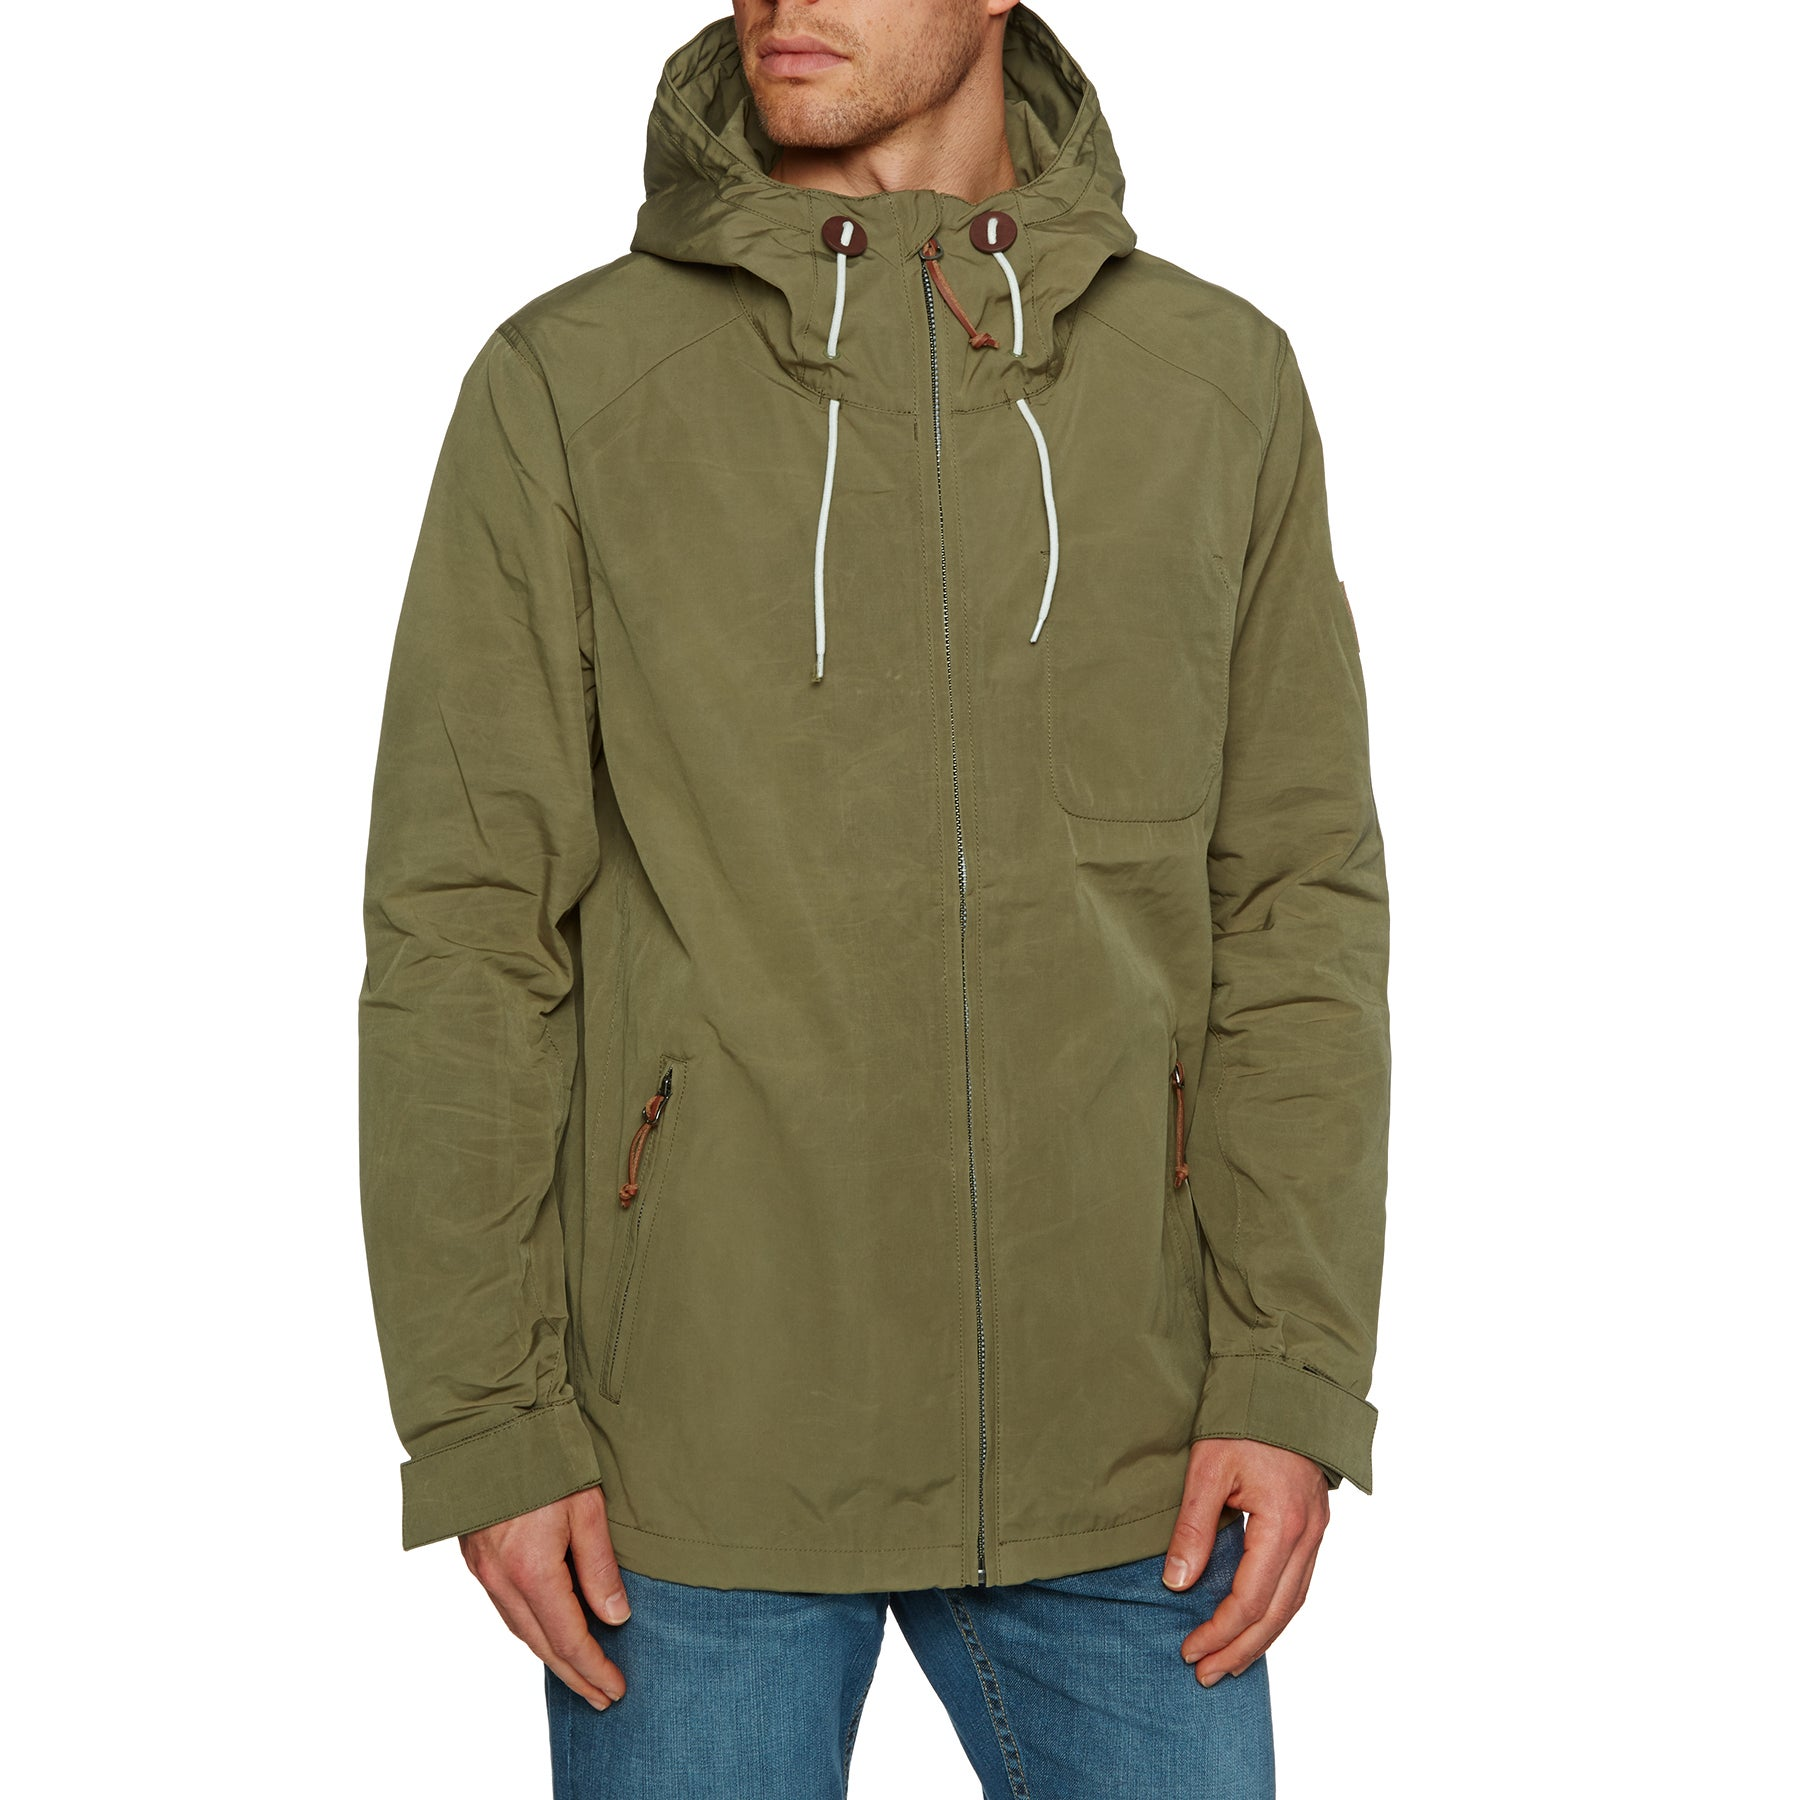 Rip Curl Epic Jacket